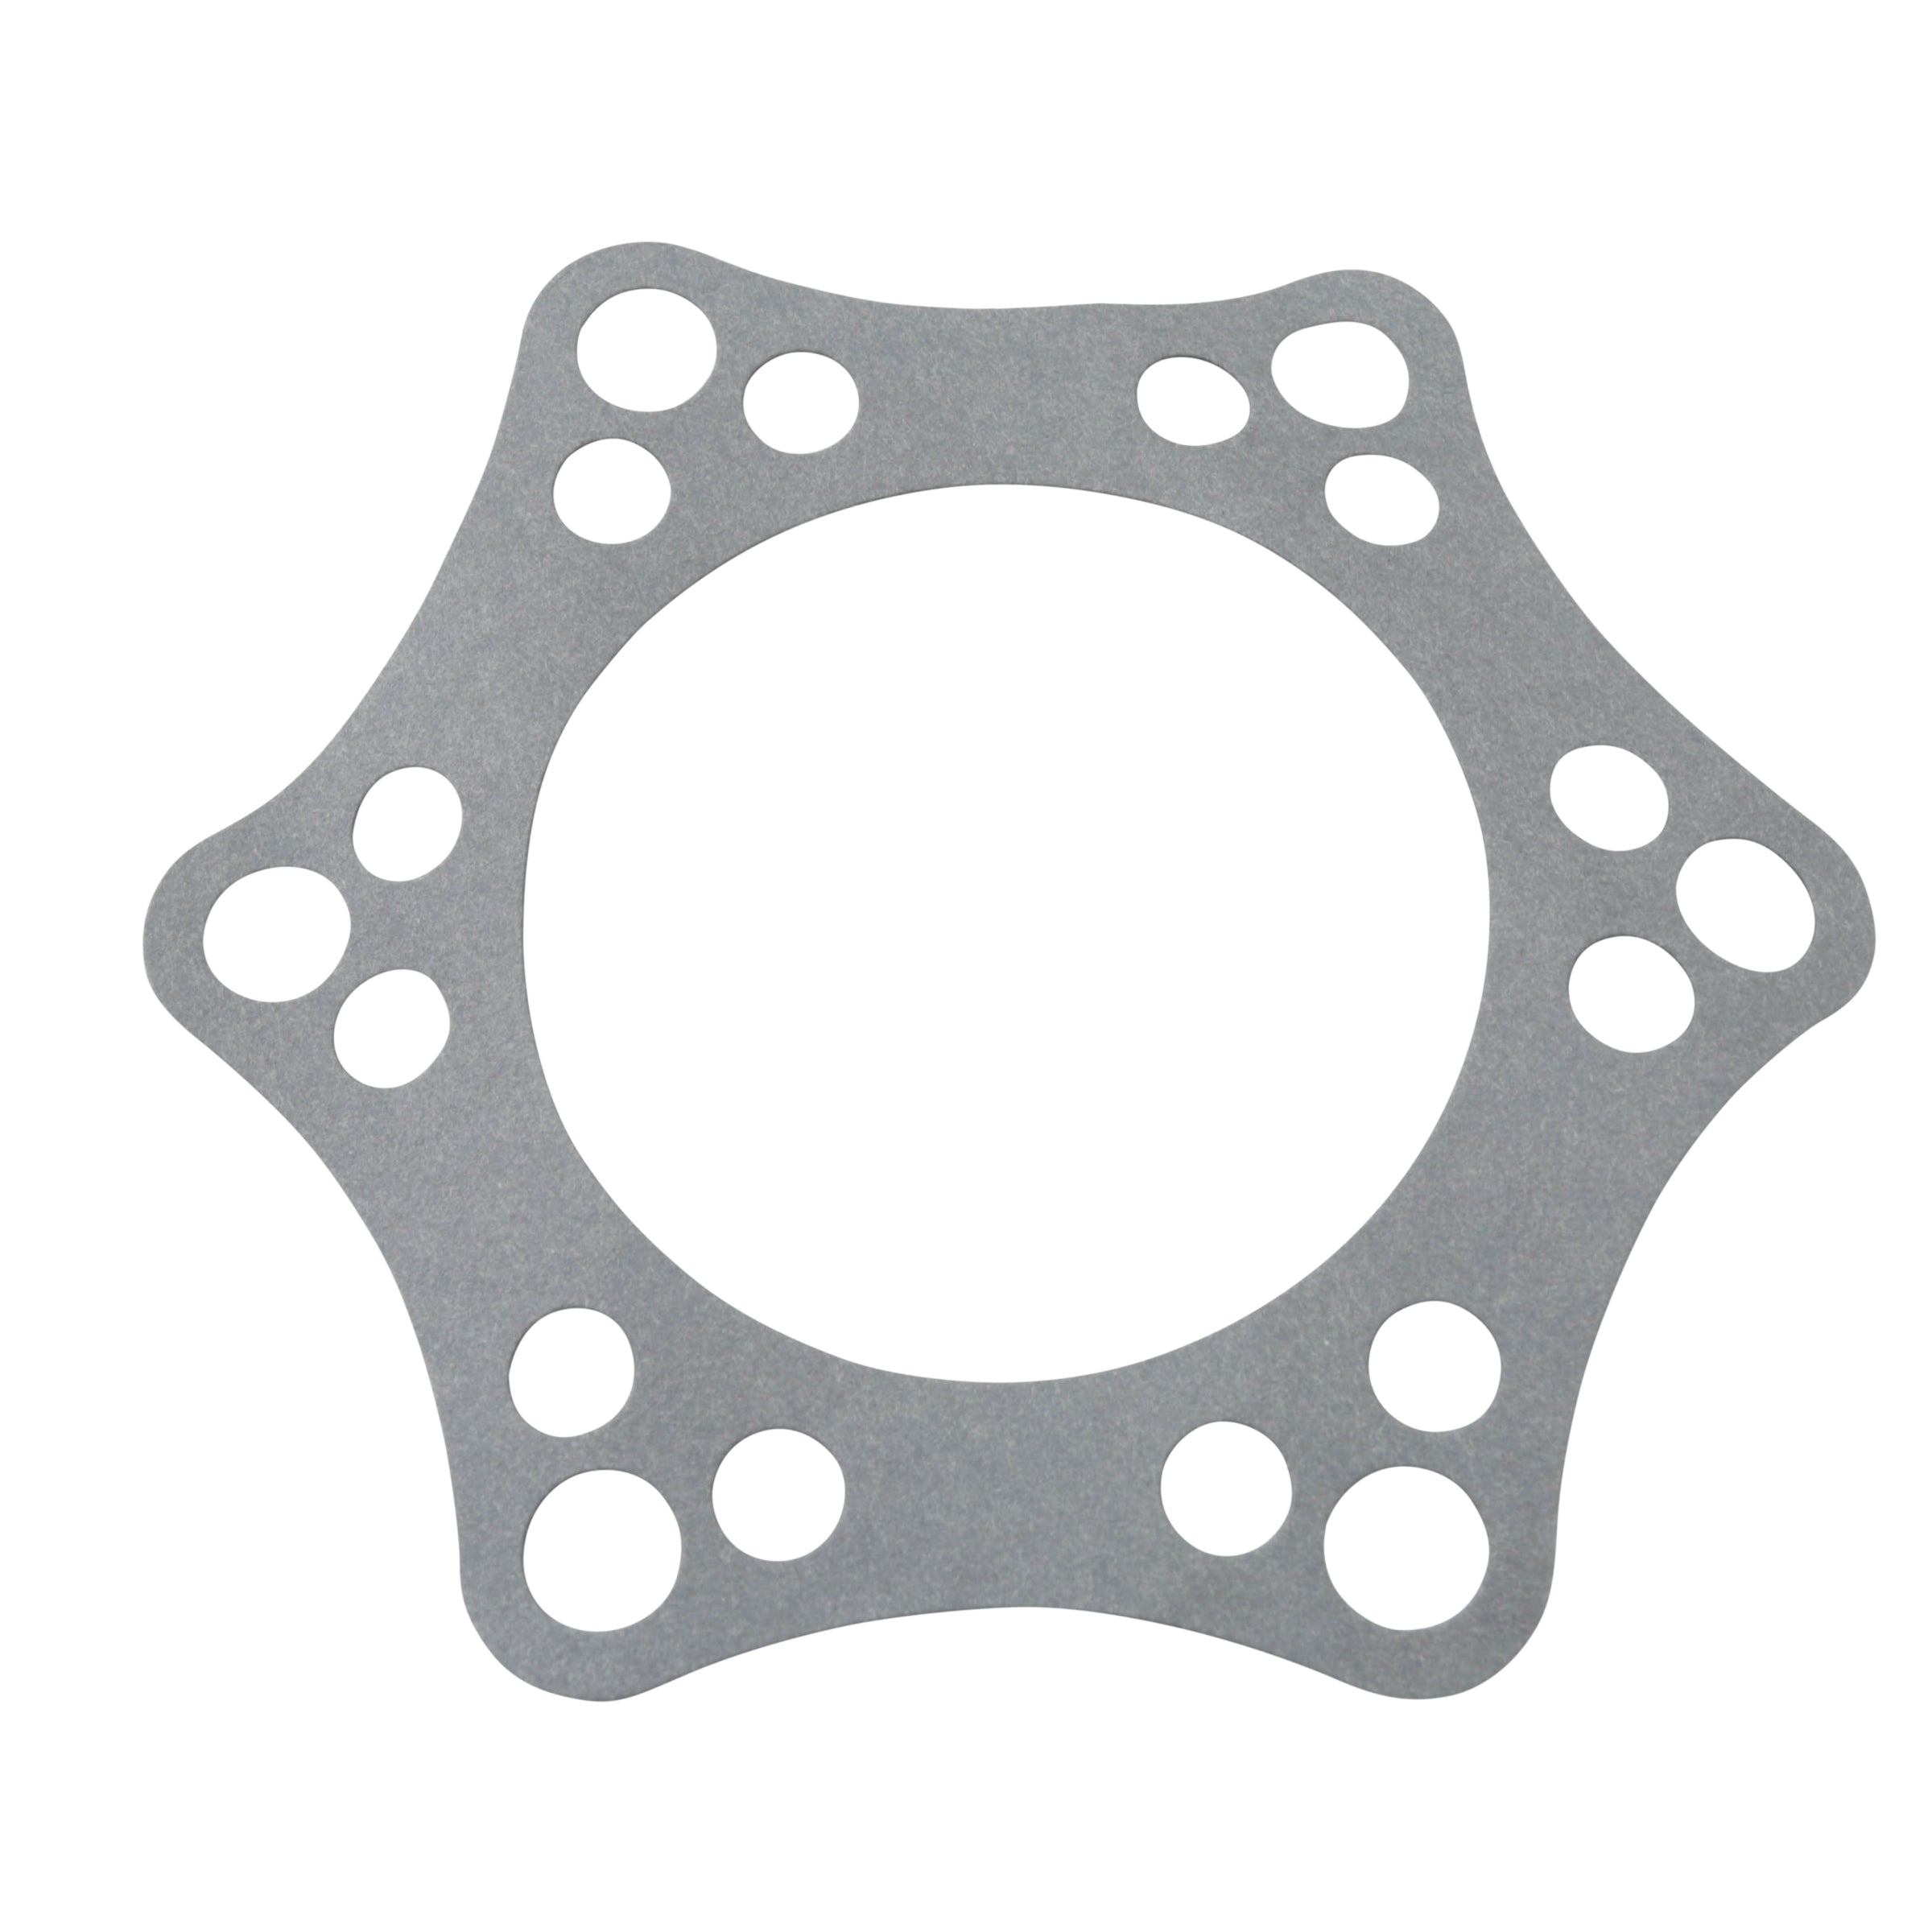 Torque Tube Rear Gasket • 1935-48 Ford